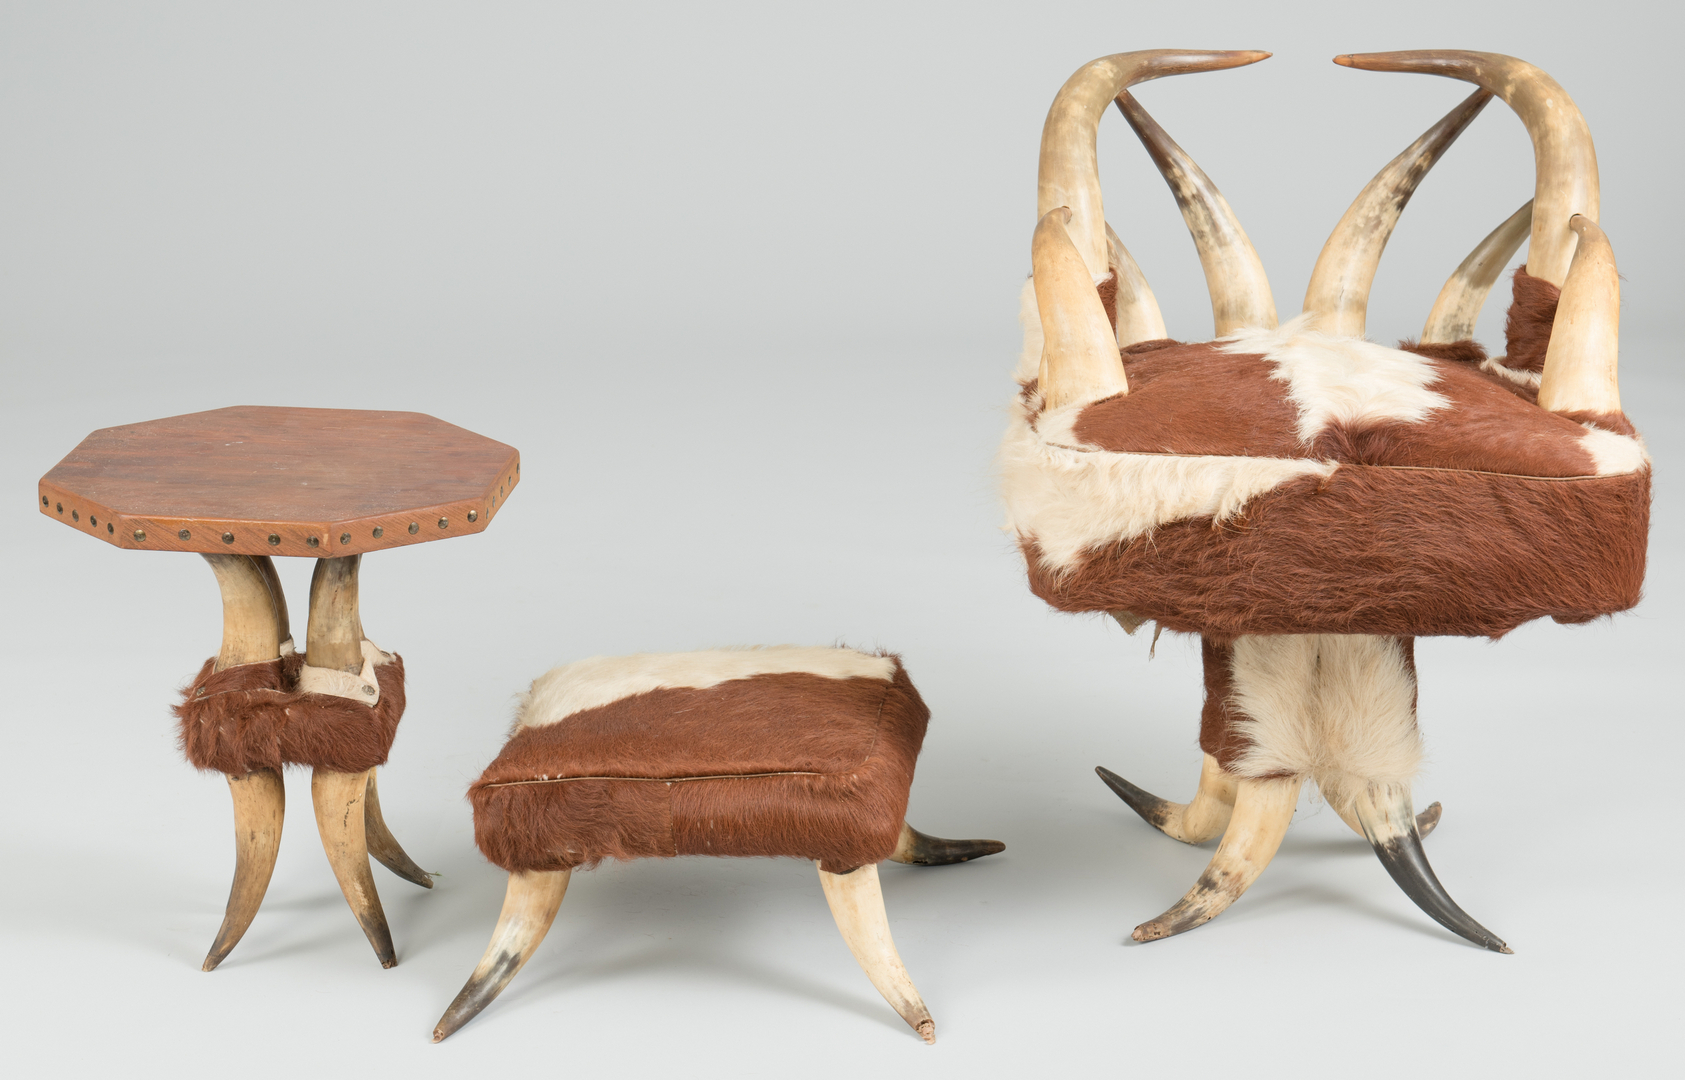 Lot 489 3 Small Steer Horn Furniture Items